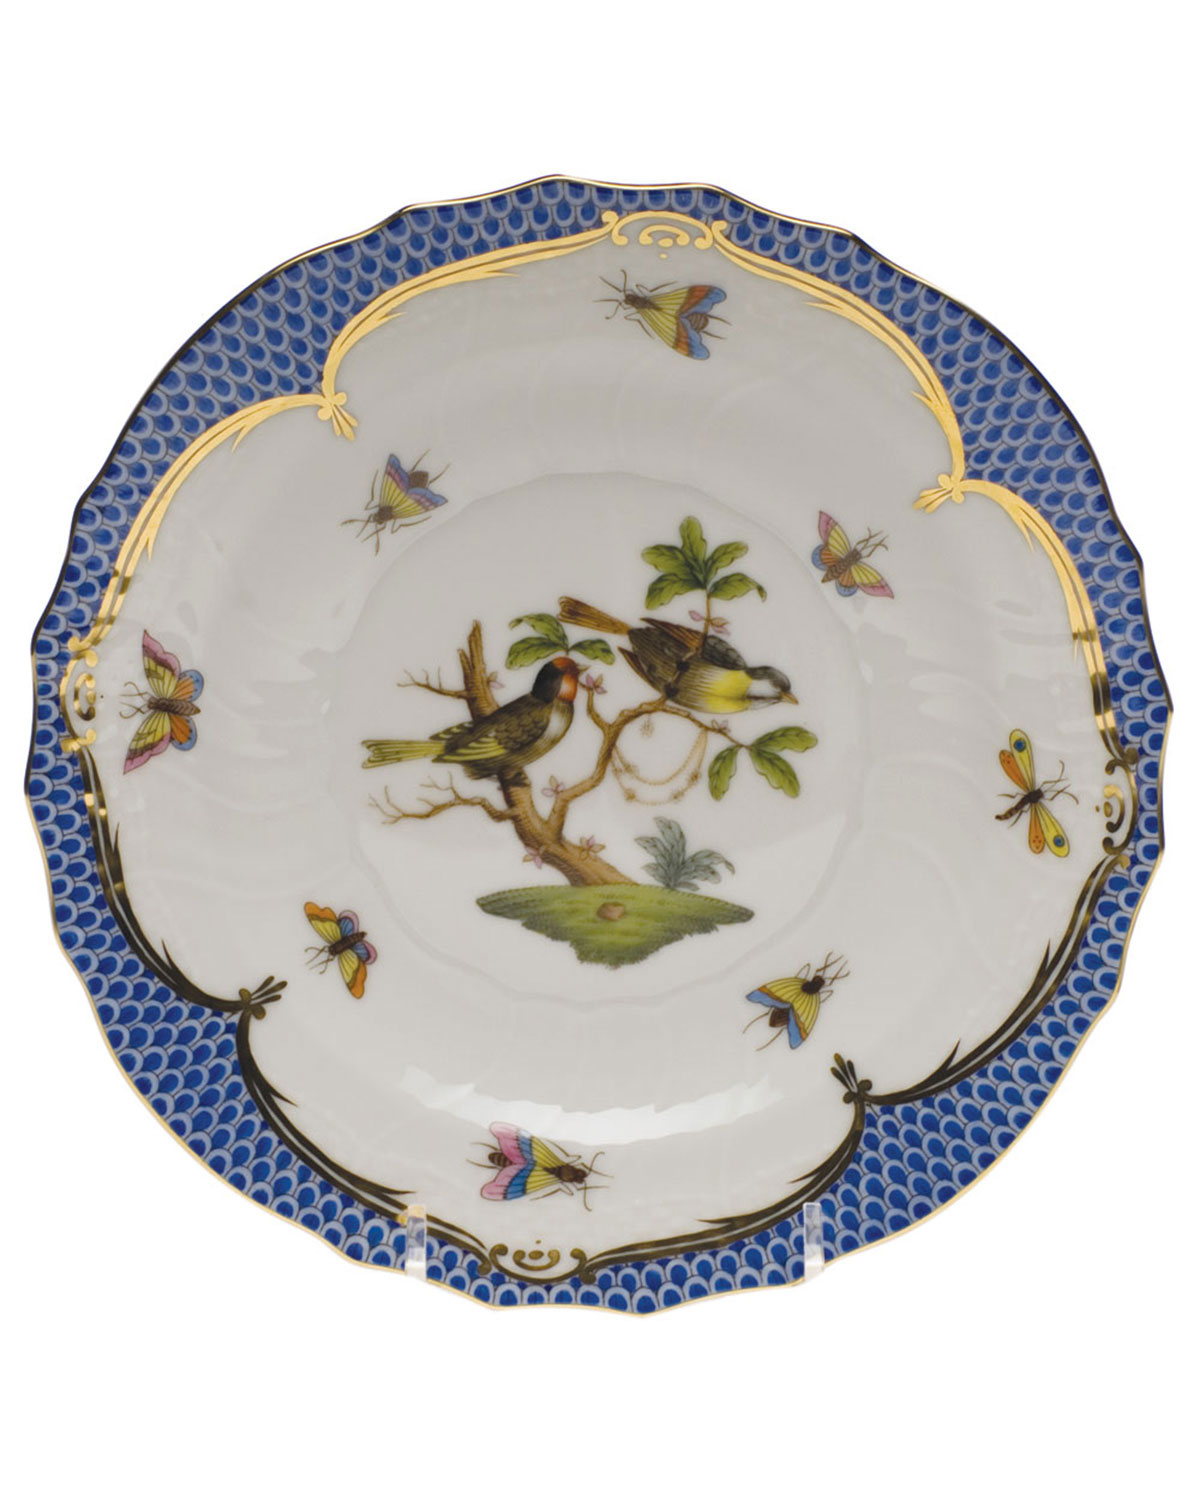 Herend Rothschild Blue Motif 11 Salad Plate